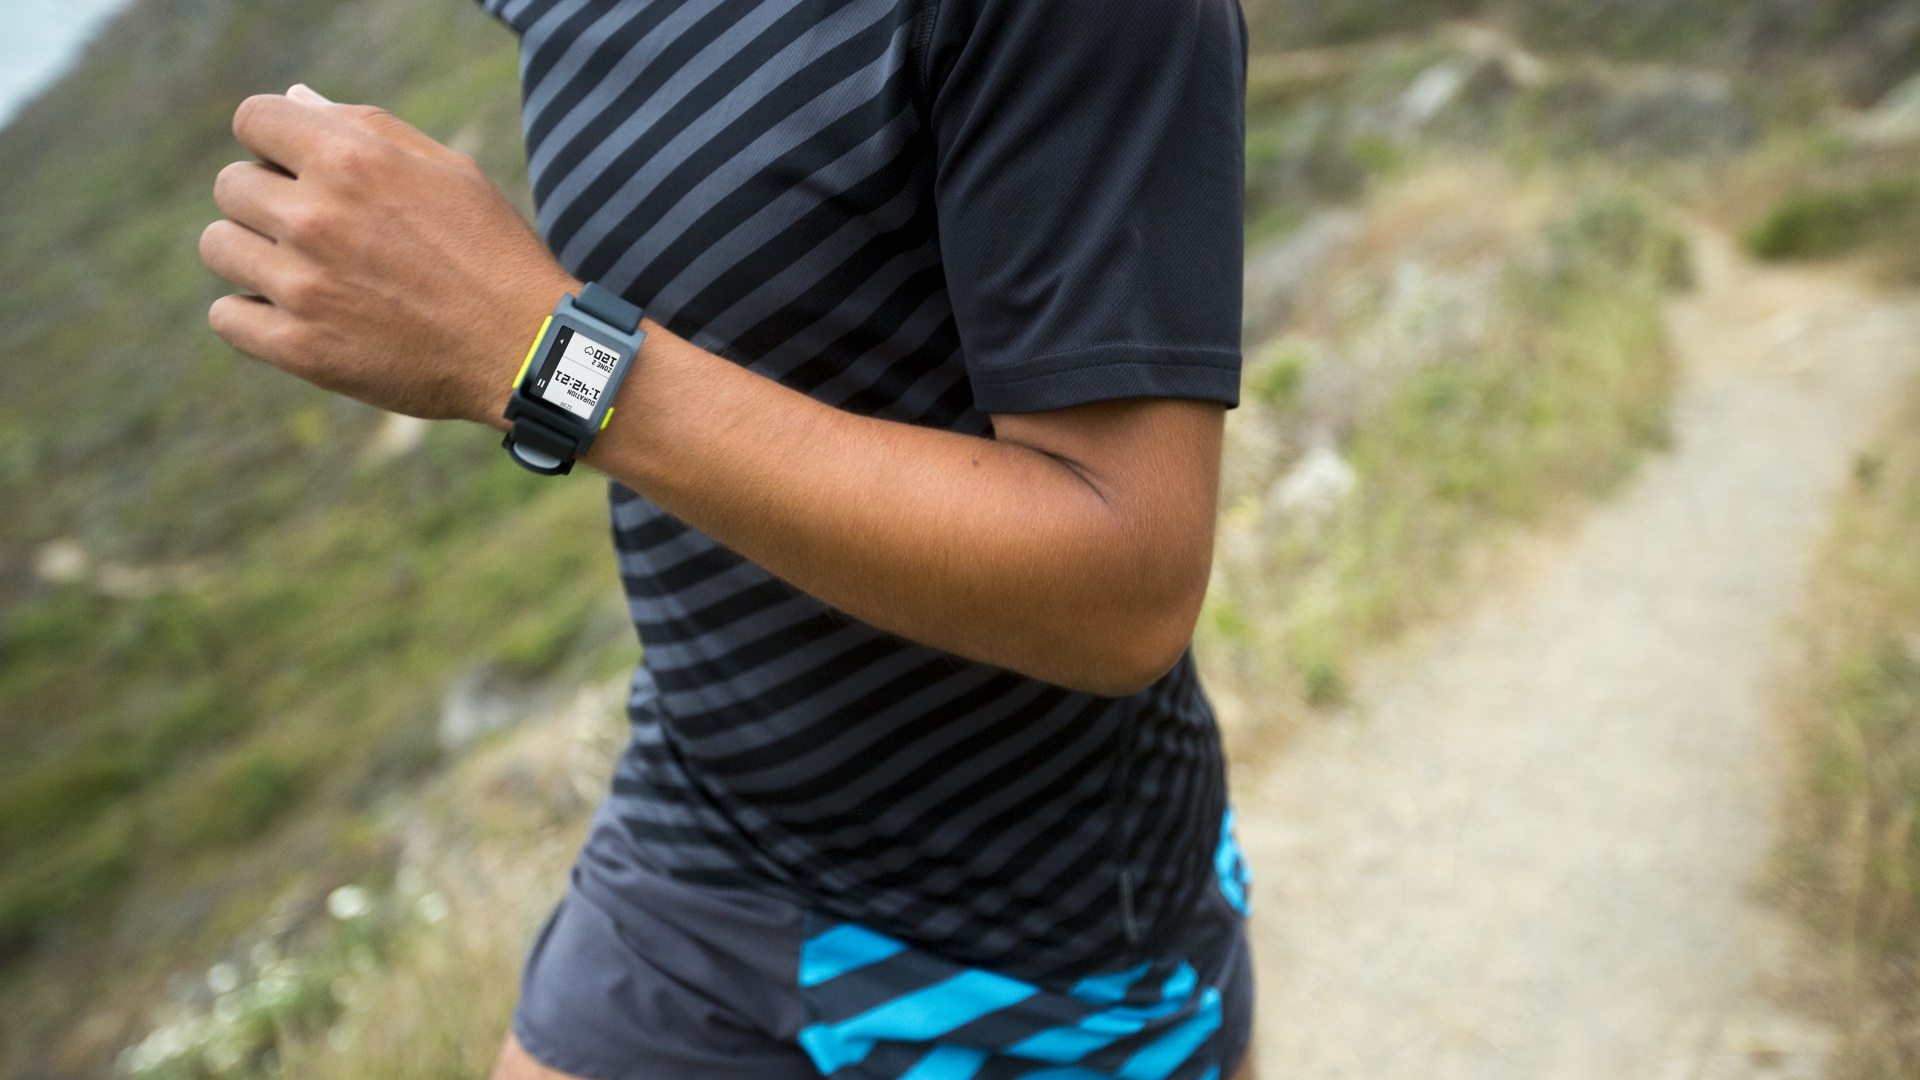 our quick verdict on pebble 2 as a fitness tracker 2 - Our quick verdict on Pebble 2 as a fitness tracker